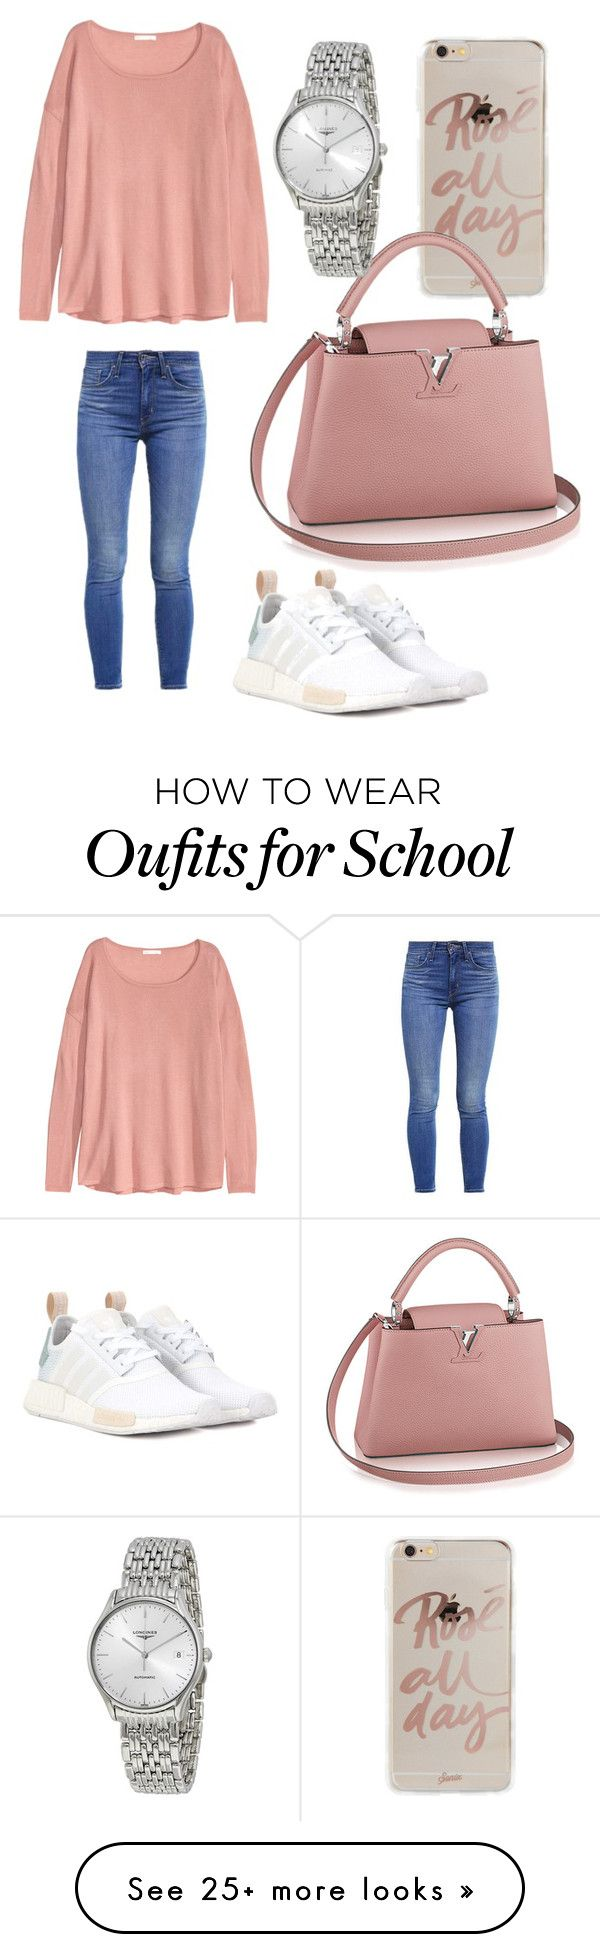 """Short school day"" by sarahfohlen on Polyvore featuring Sonix, H&M, Levi's, adidas Originals, Longines, Winter and 2k17"